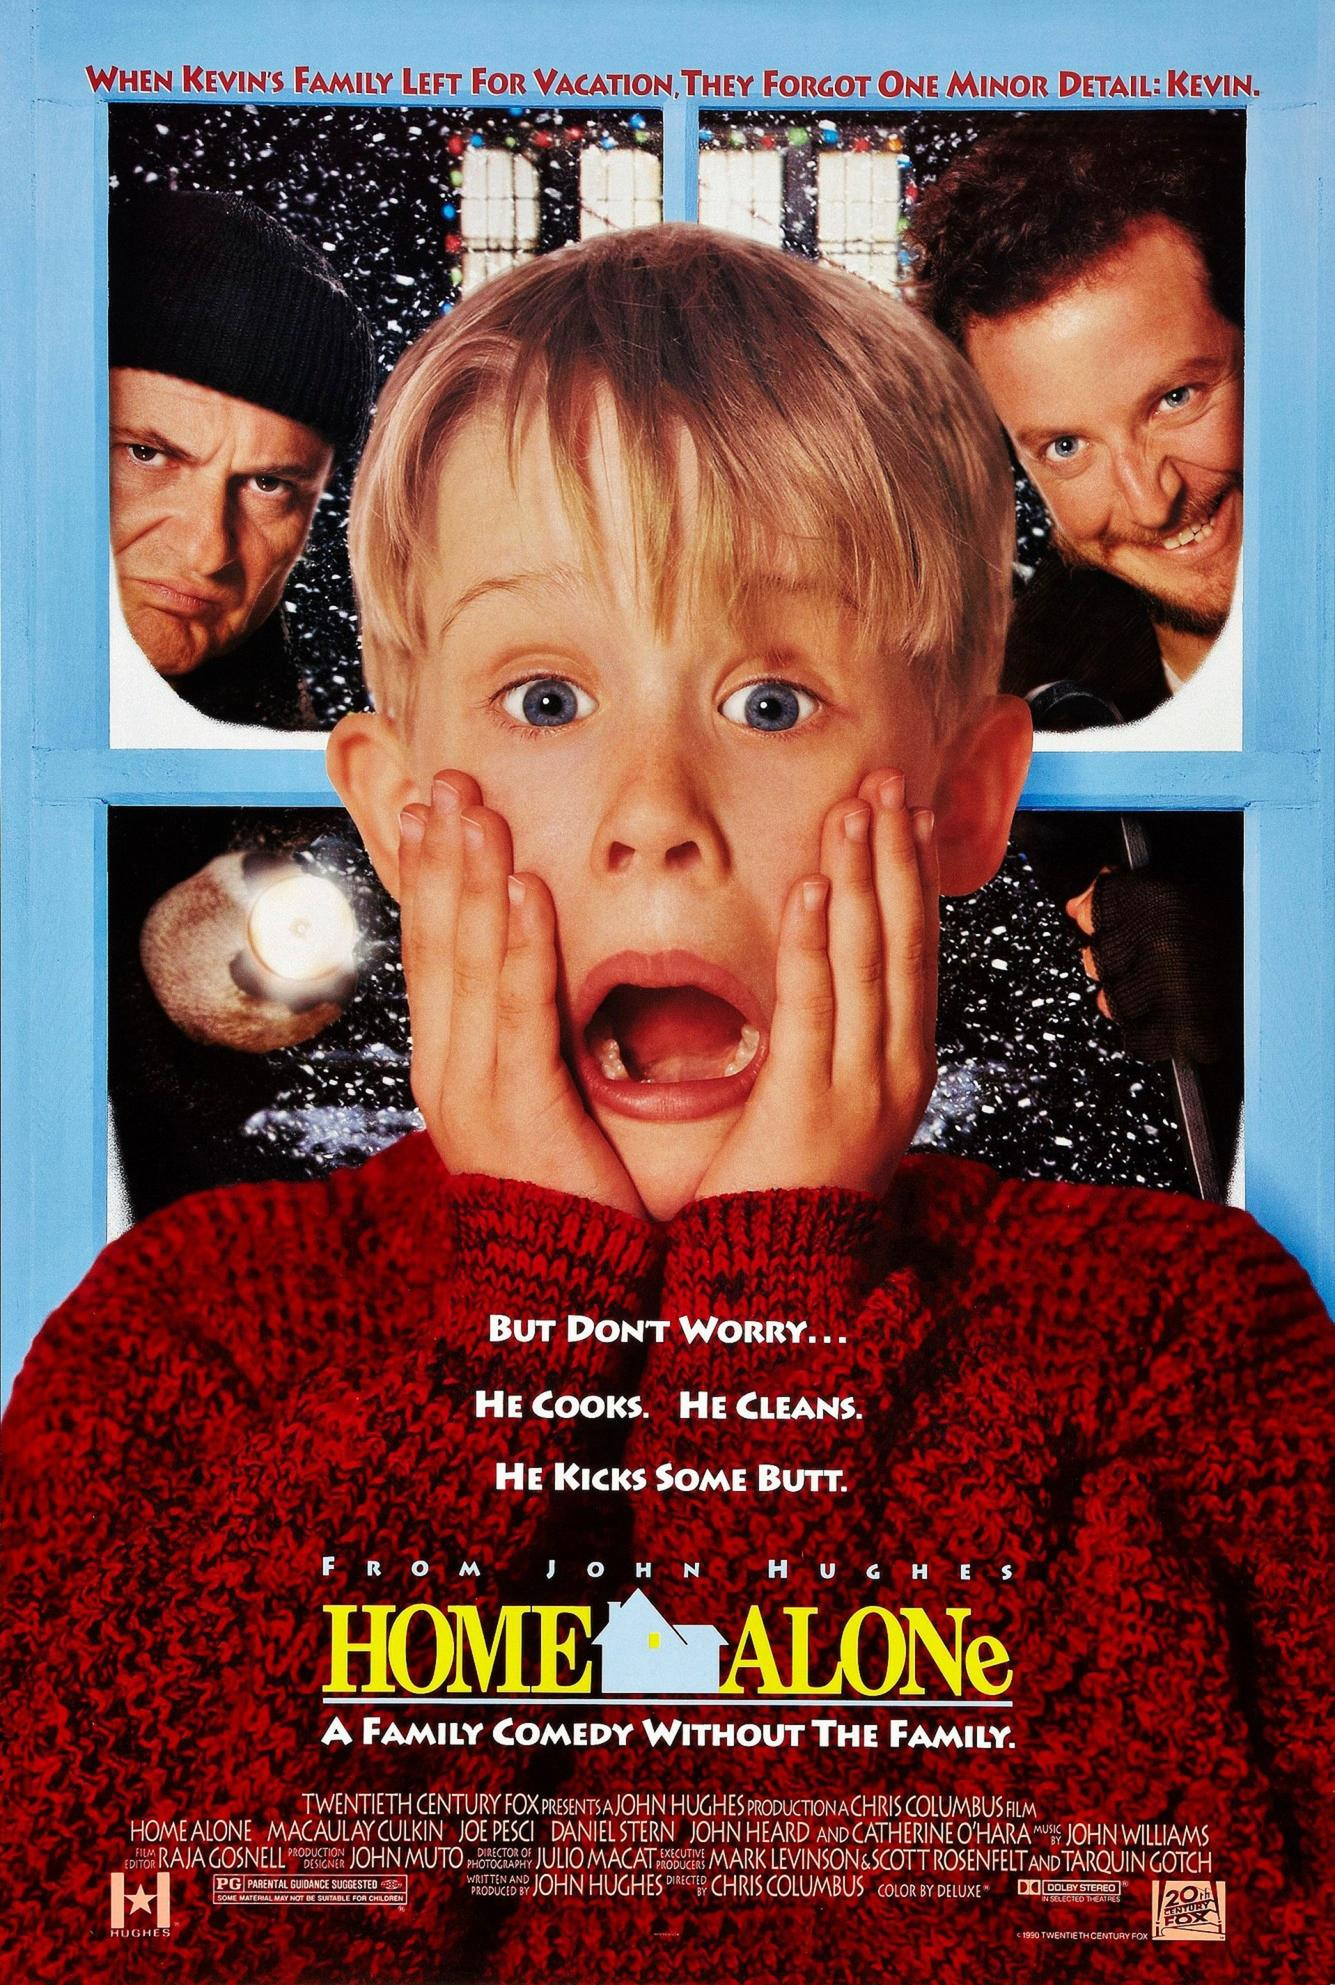 Home Alone (1990) RM4K (1080p BluRay x265 HEVC 10bit AAC 5.1 Tigole) | 4.7 GB |